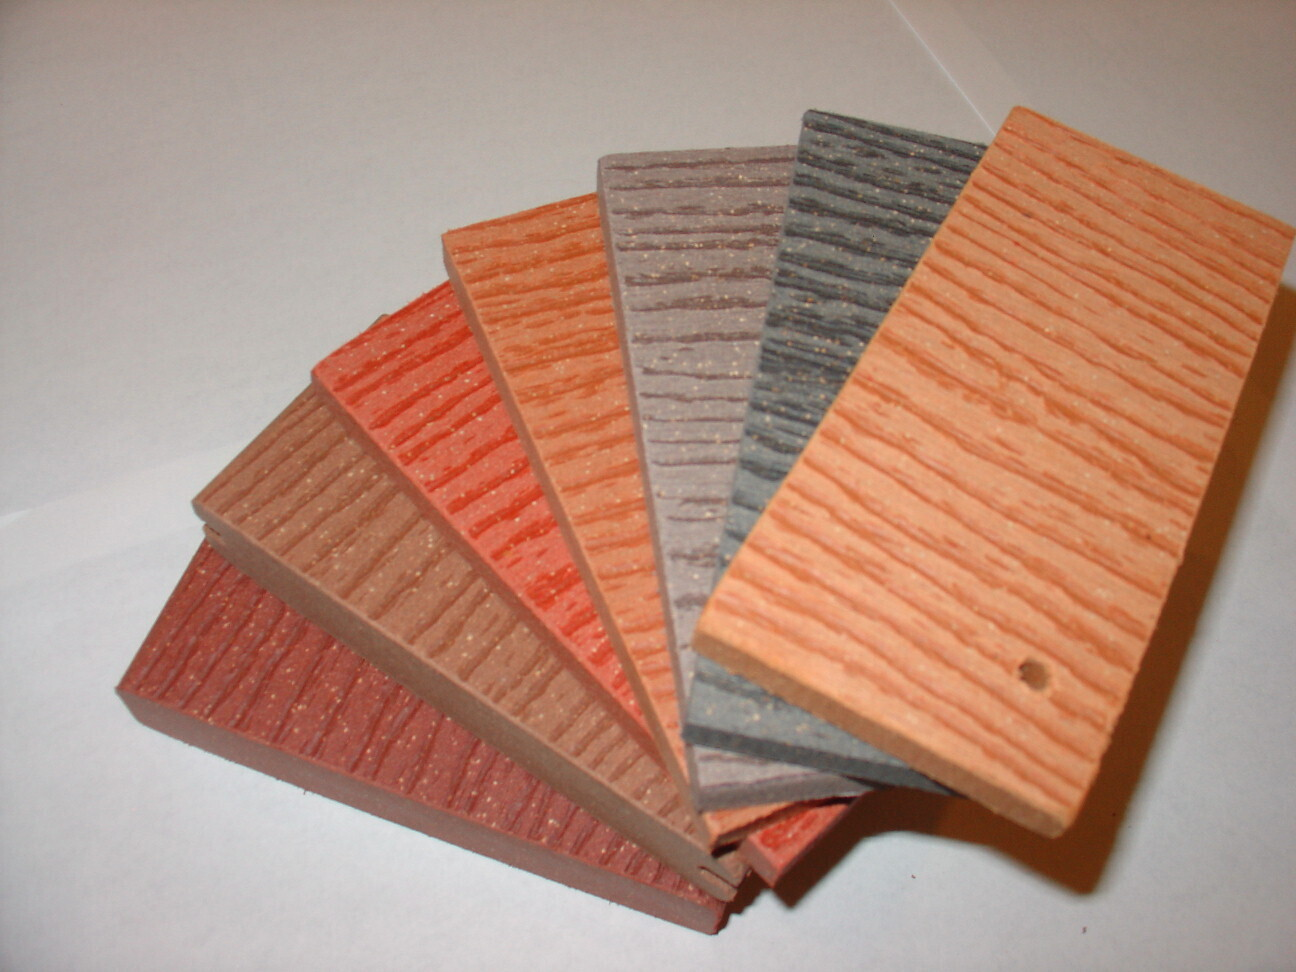 Wood Plastic Composite Market Size, Share & Industry Analysis, By Material (Polyethylene, Polypropylene, Polyvinyl Chloride and Others), By Applicatio